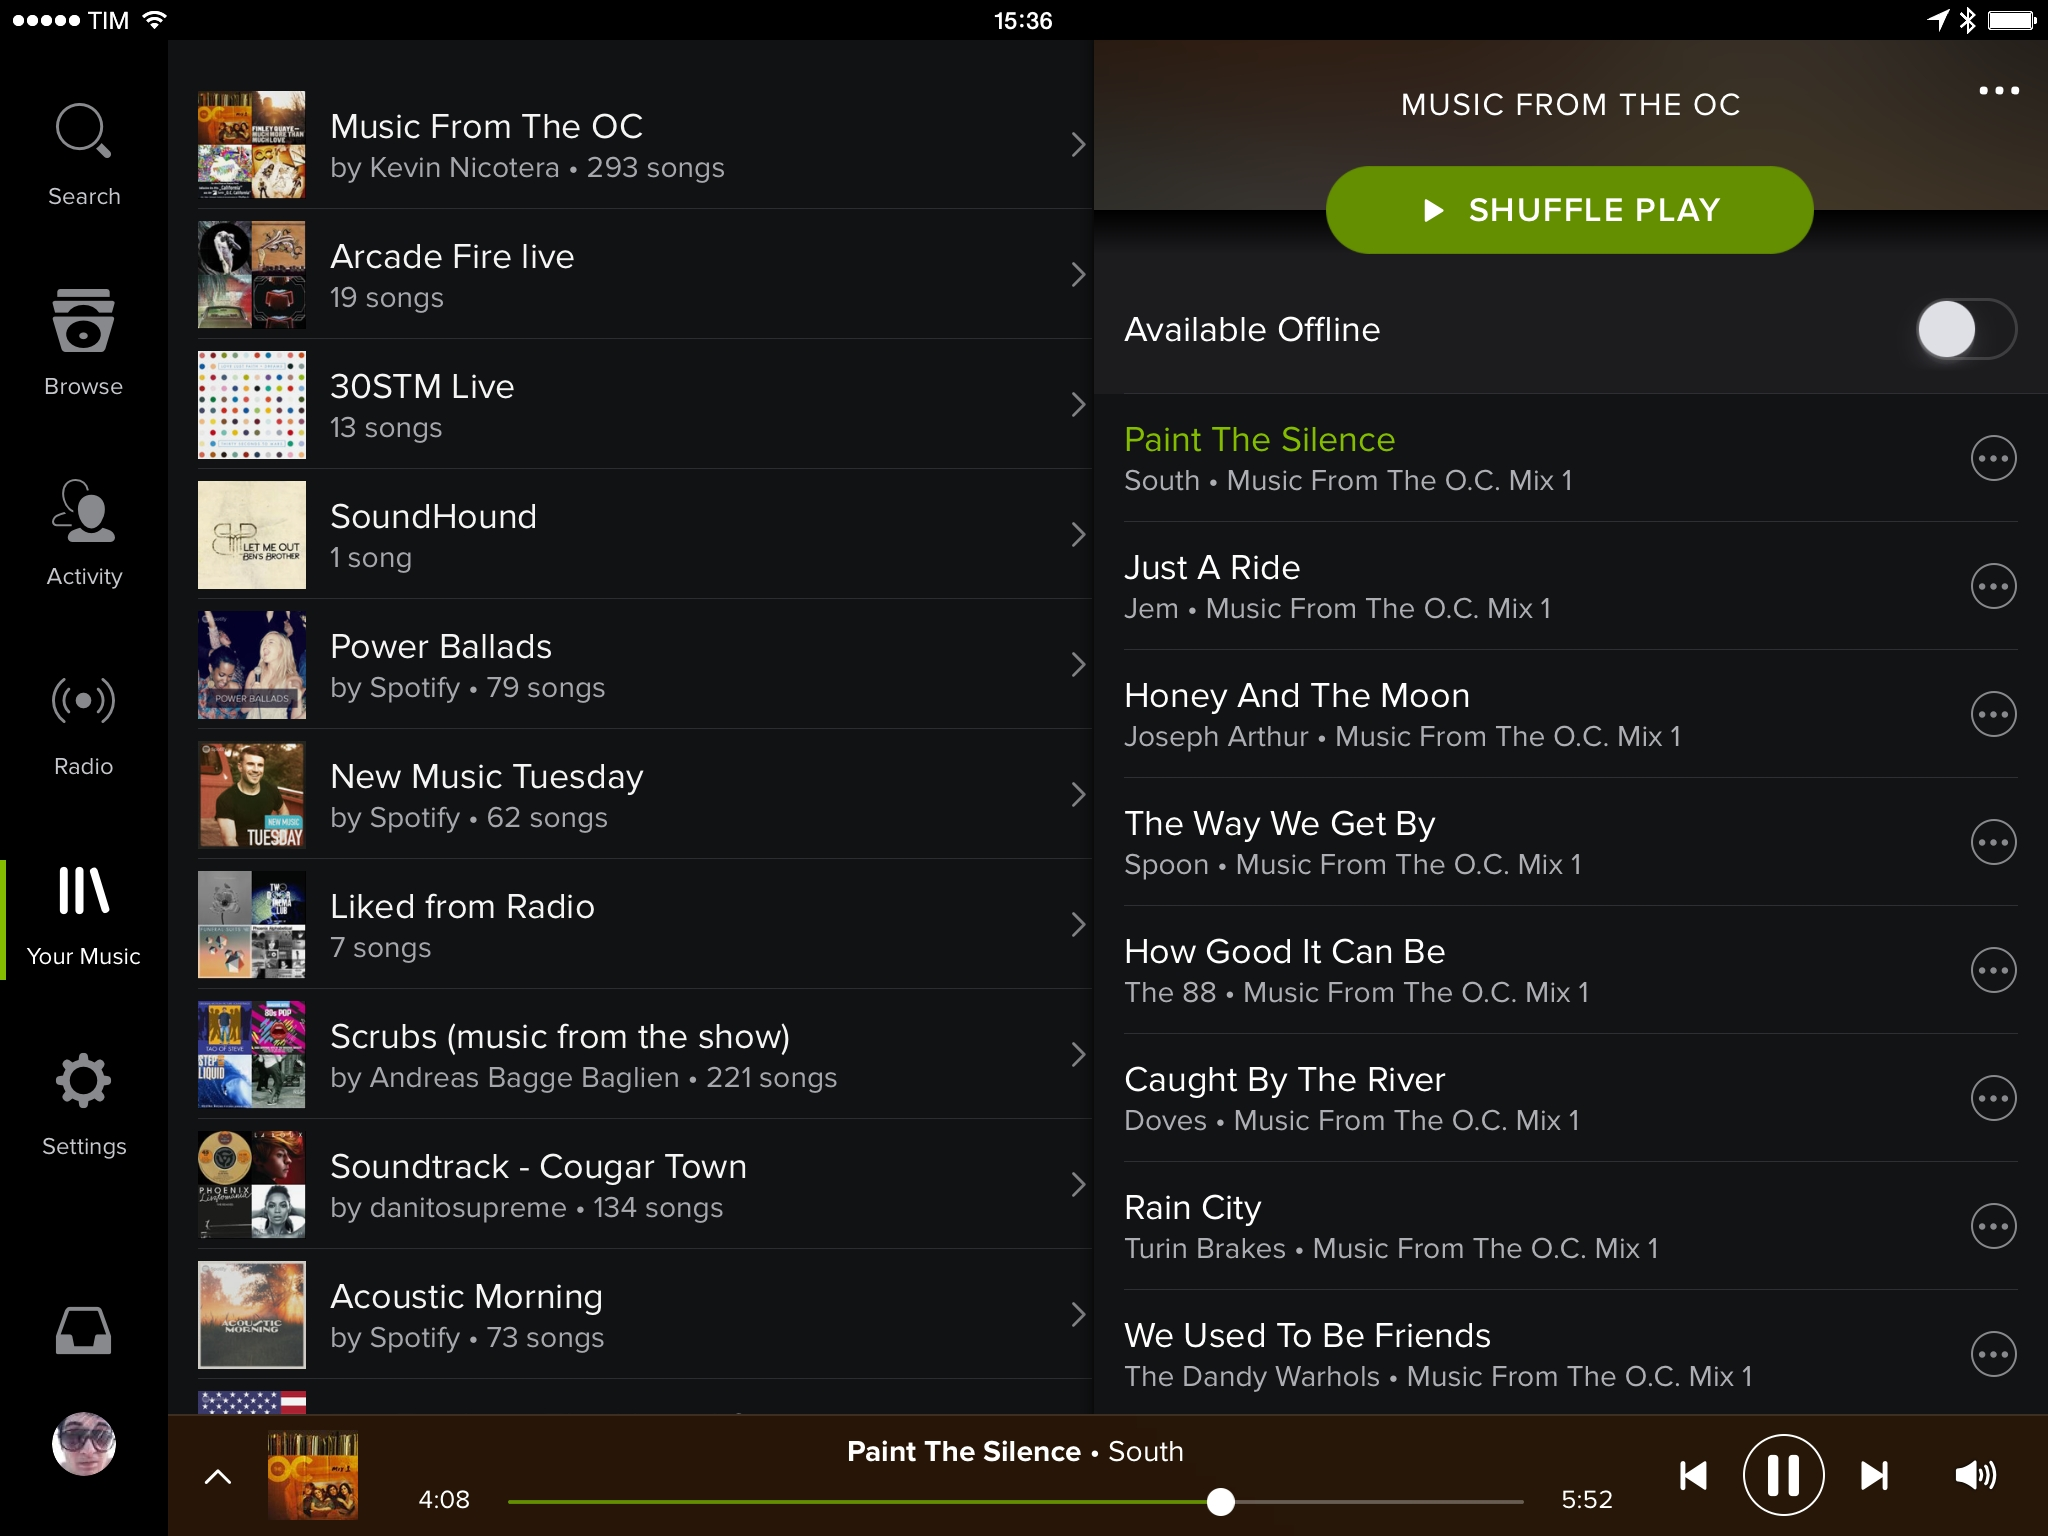 spotify brings new design your music to ipad app macstories